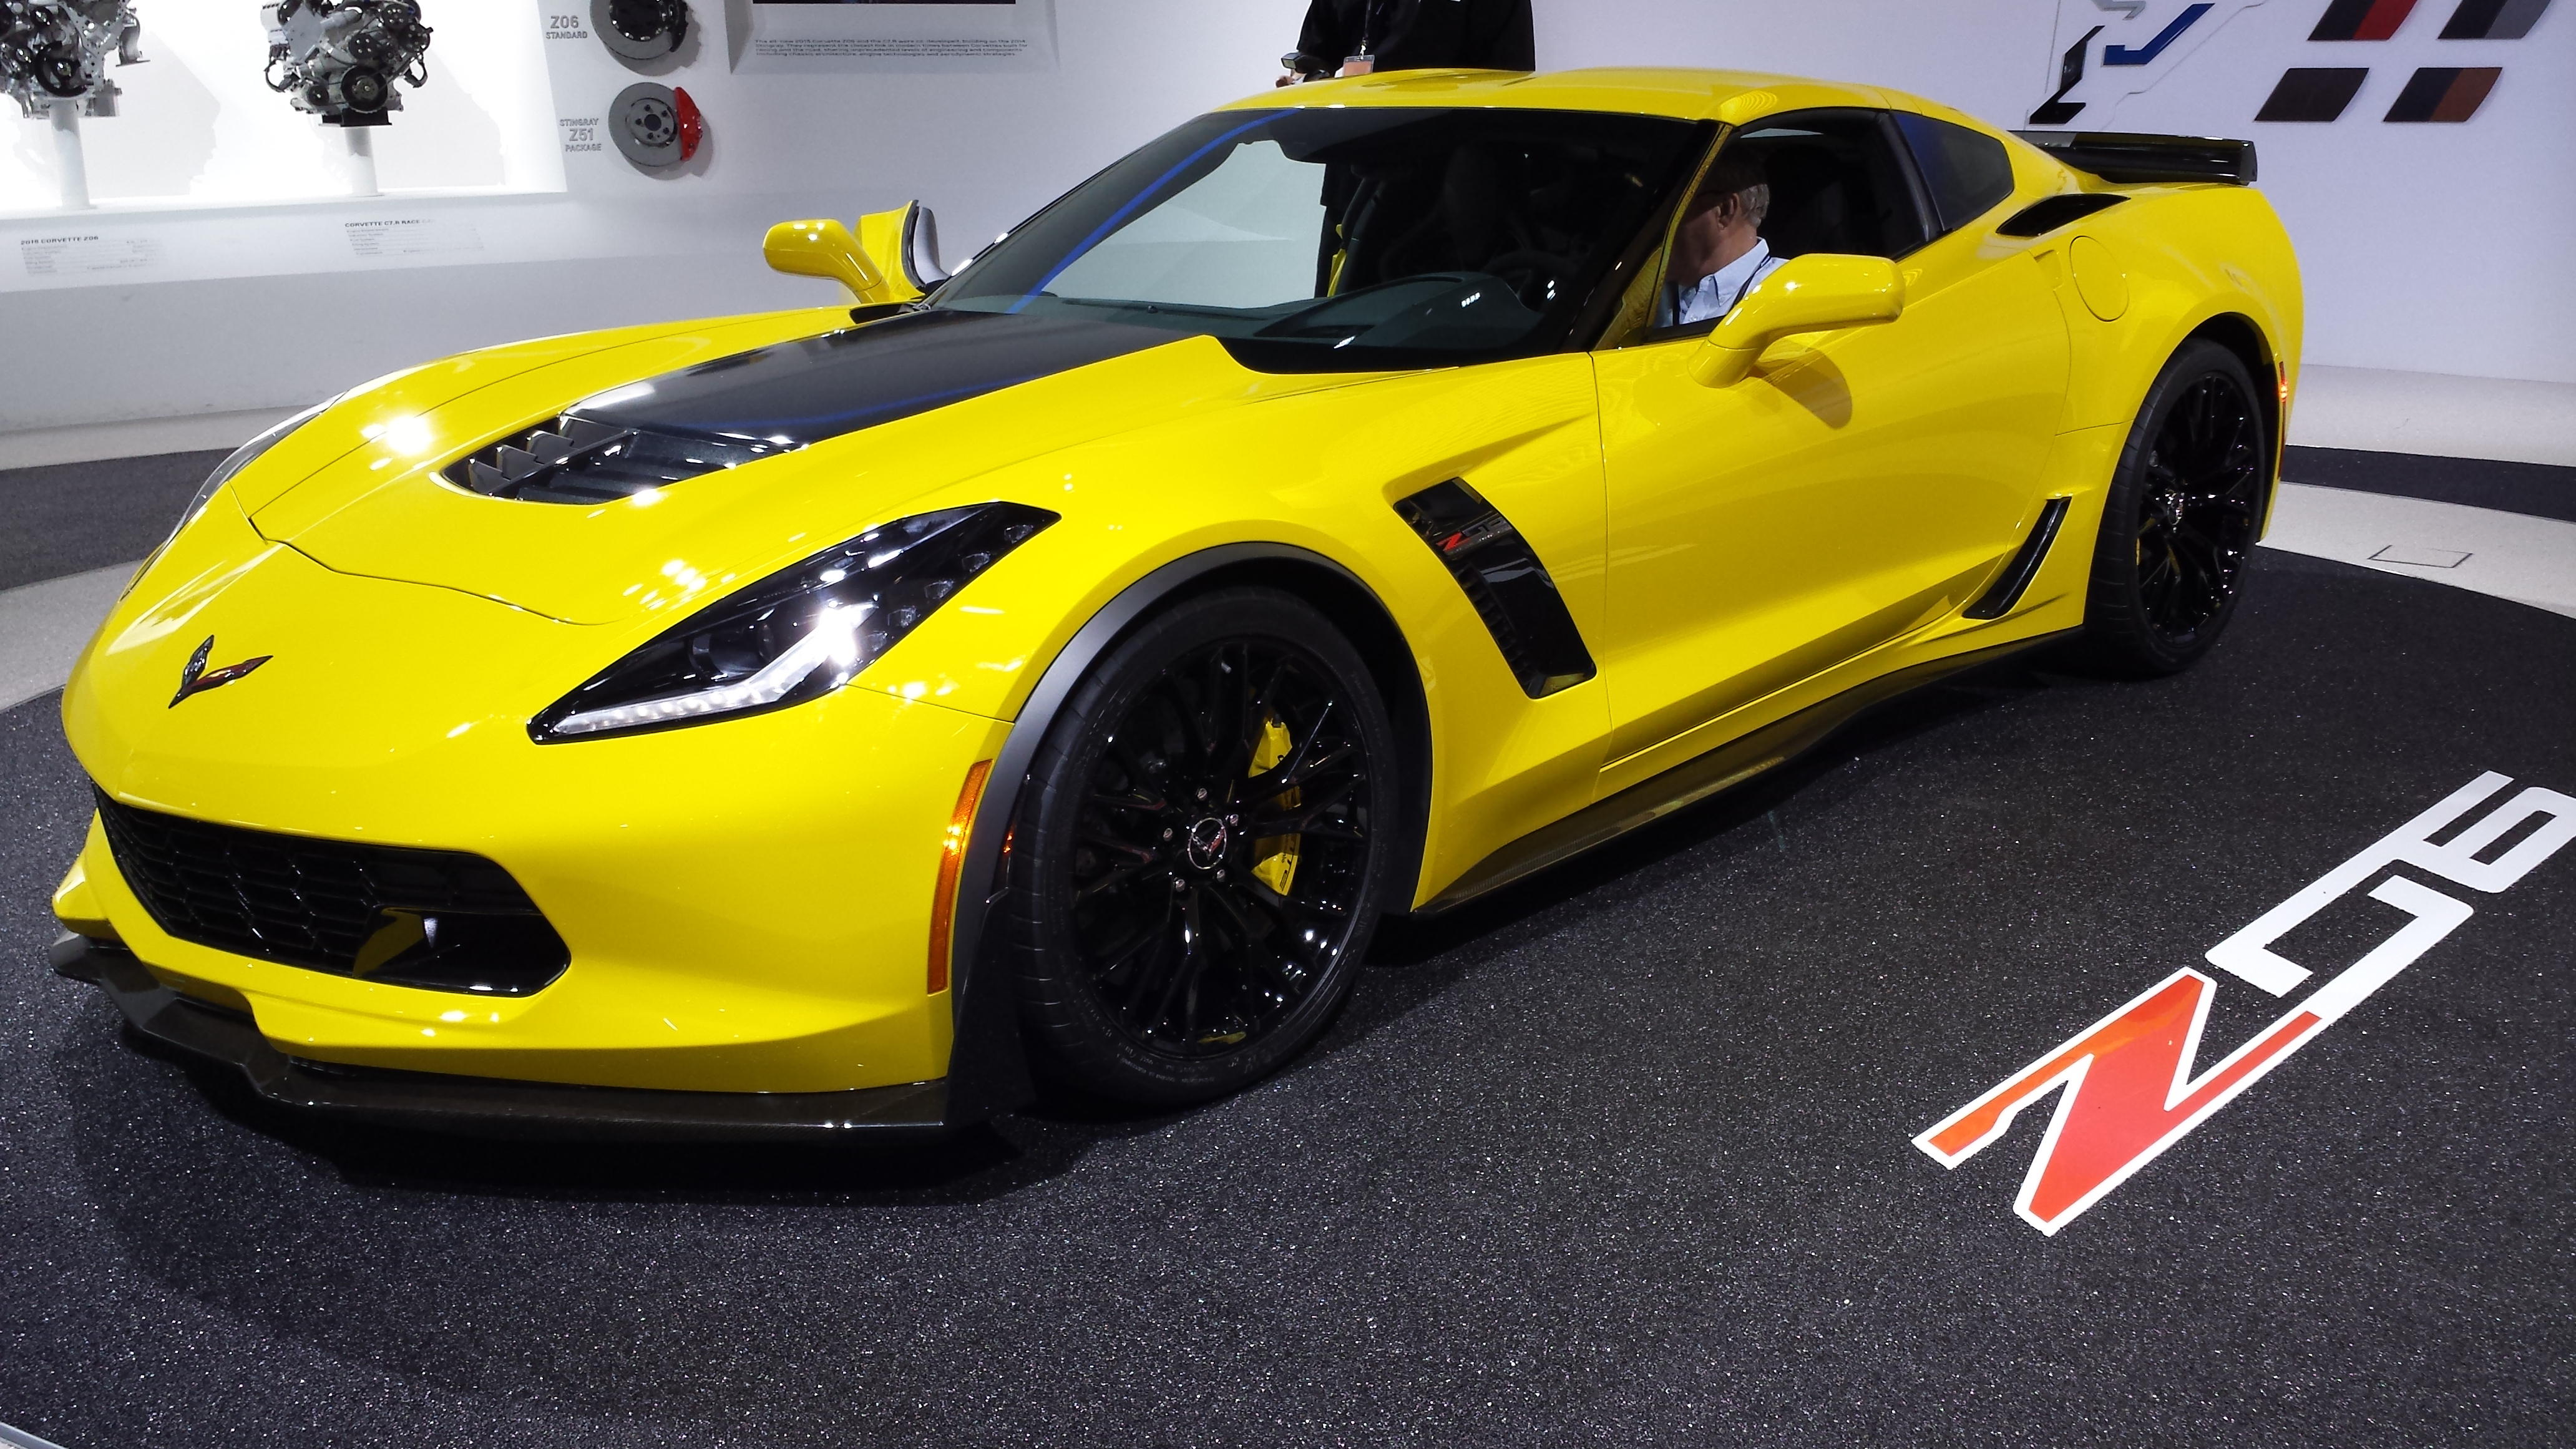 2015 chevy stingray corvette z06 debut at detriot auto show 2. Cars Review. Best American Auto & Cars Review